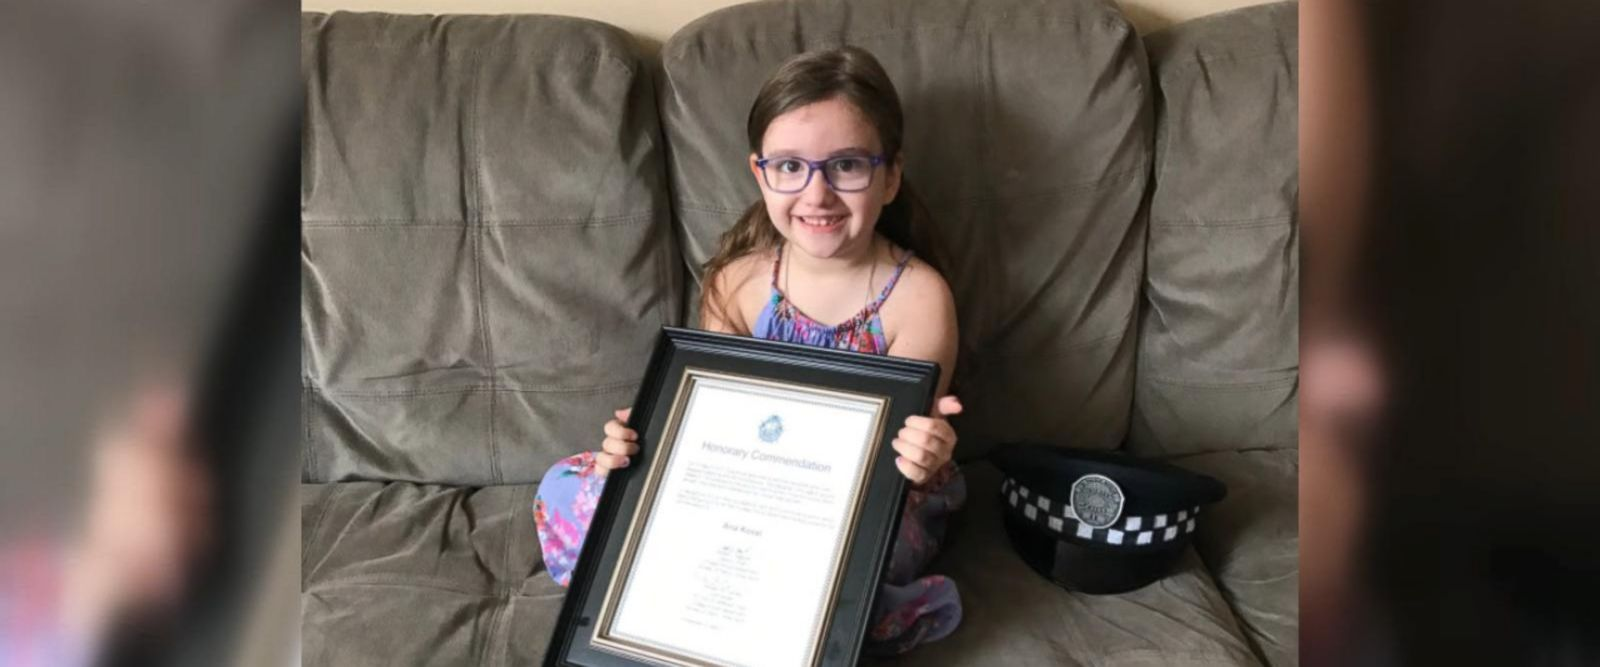 Aria Koval dialed 911 after her mother, Sue Koval, suffered a severe asthma attack at home.